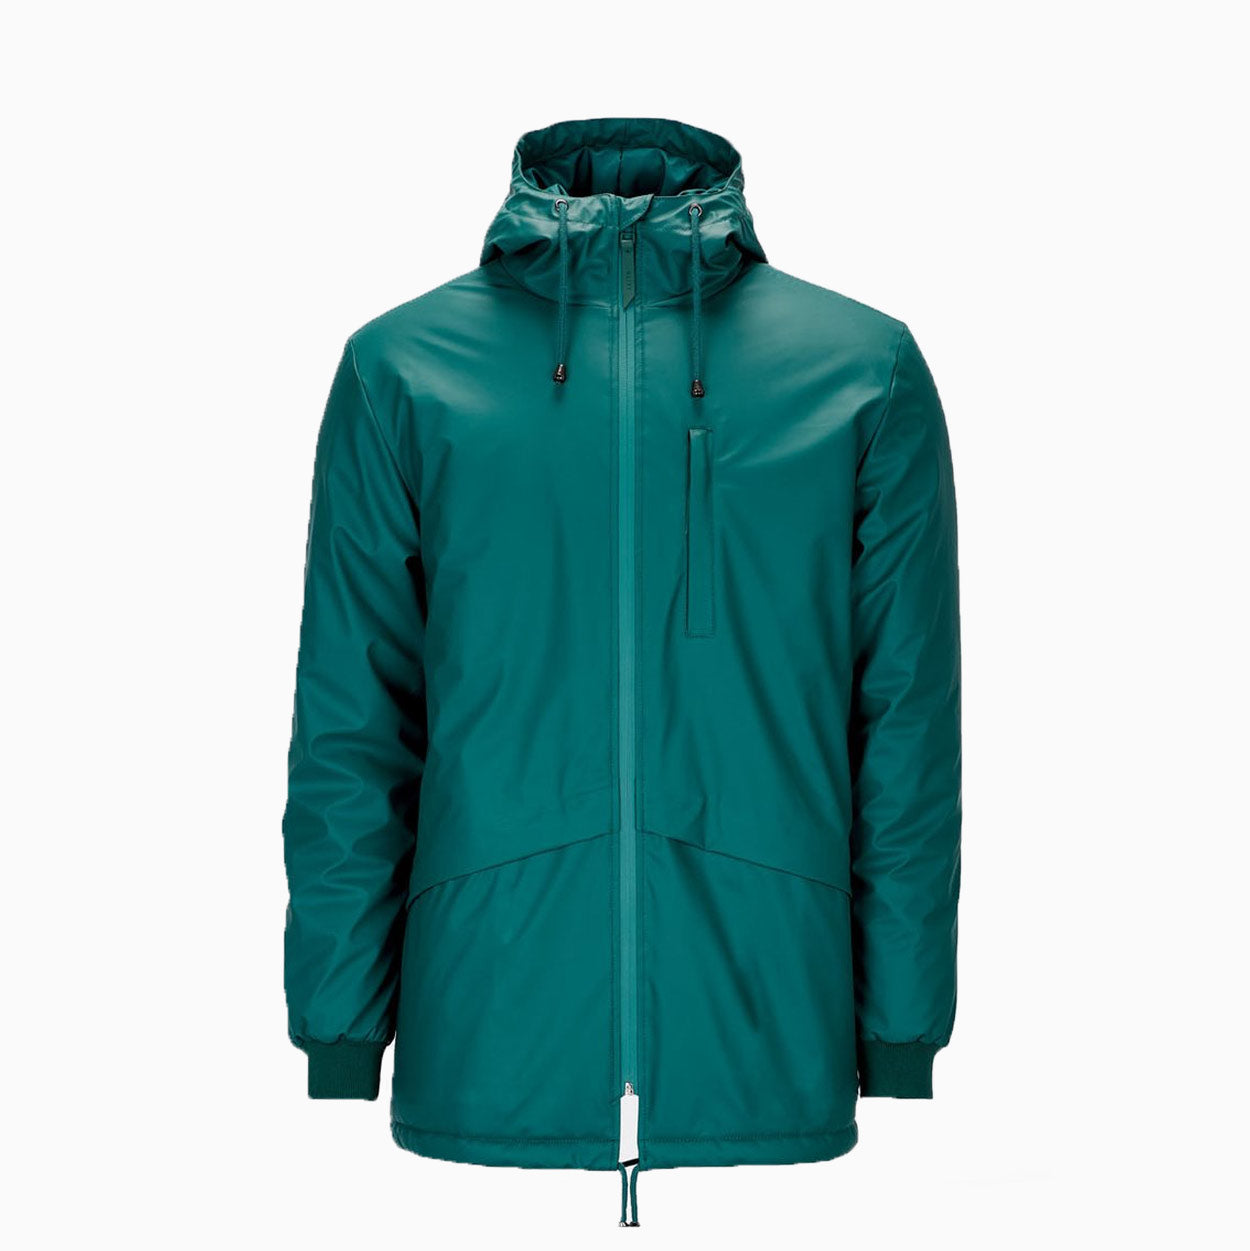 Rains N3 Parka Jacket - Dark Teal